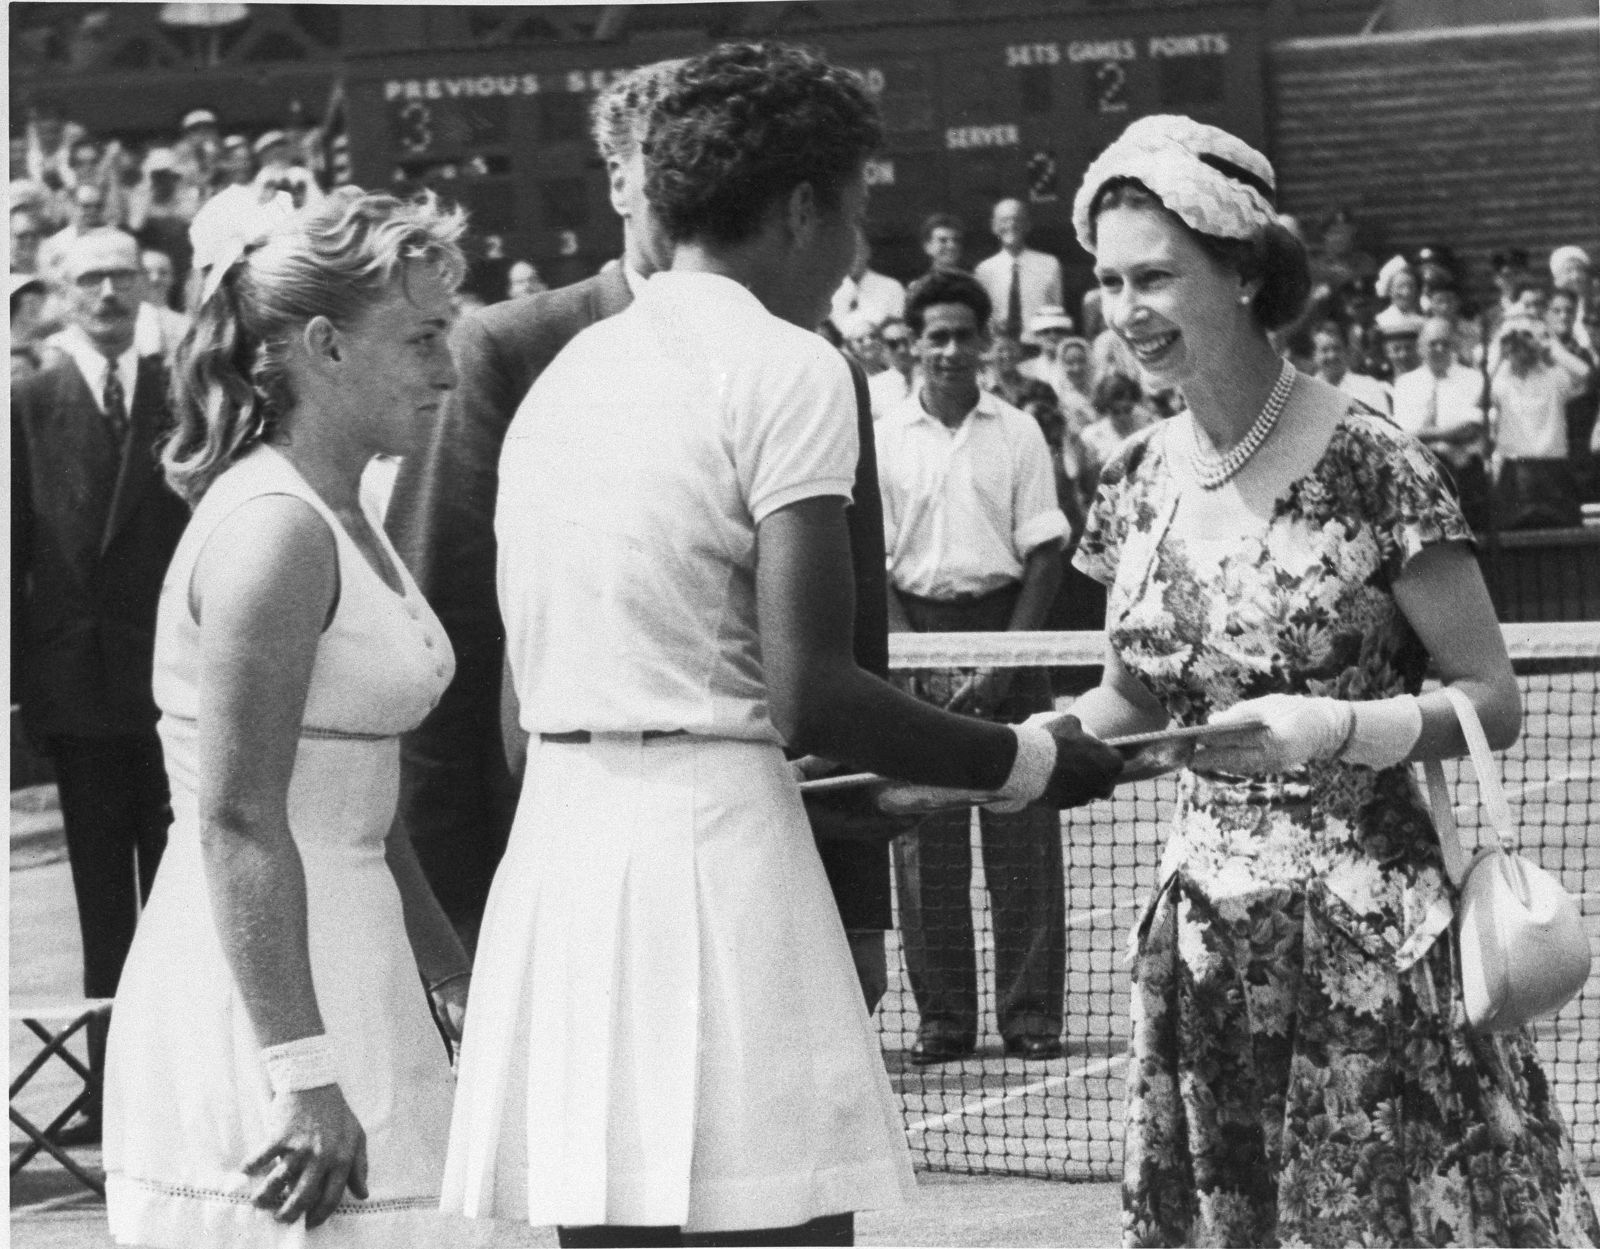 "FILE - In this July 6, 1957 file photo, Queen Elizabeth II, right, presents winners trophy to Althea Gibson who won the women's title in the All England Lawn Tennis Championship at Wimbledon. When the US Open begins this week, she will have a statue unveiled in her honor. Says tennis great Billie Jean King: ""She's our Jackie Robinson of tennis."" (AP Photo)"